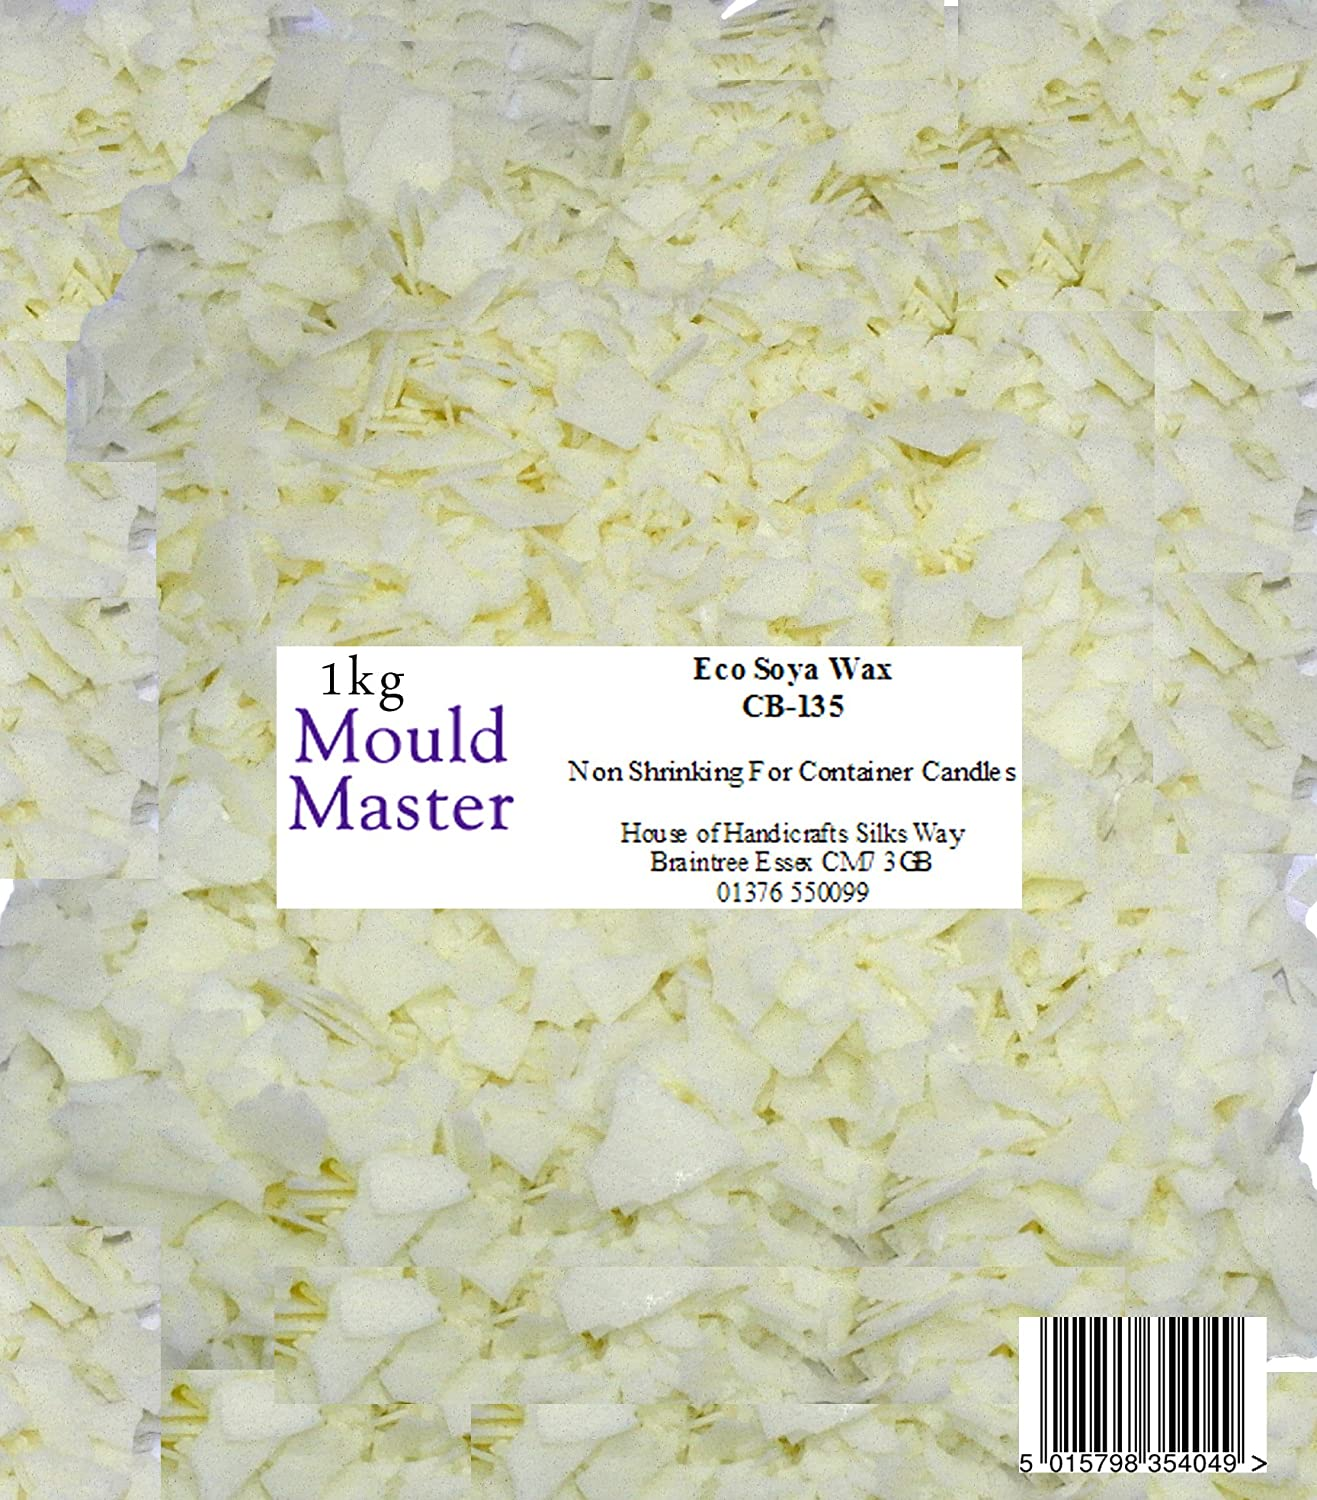 Moldmaster - Cera di soia naturale, 1 kg, colore bianco House Of Handicrafts 35404